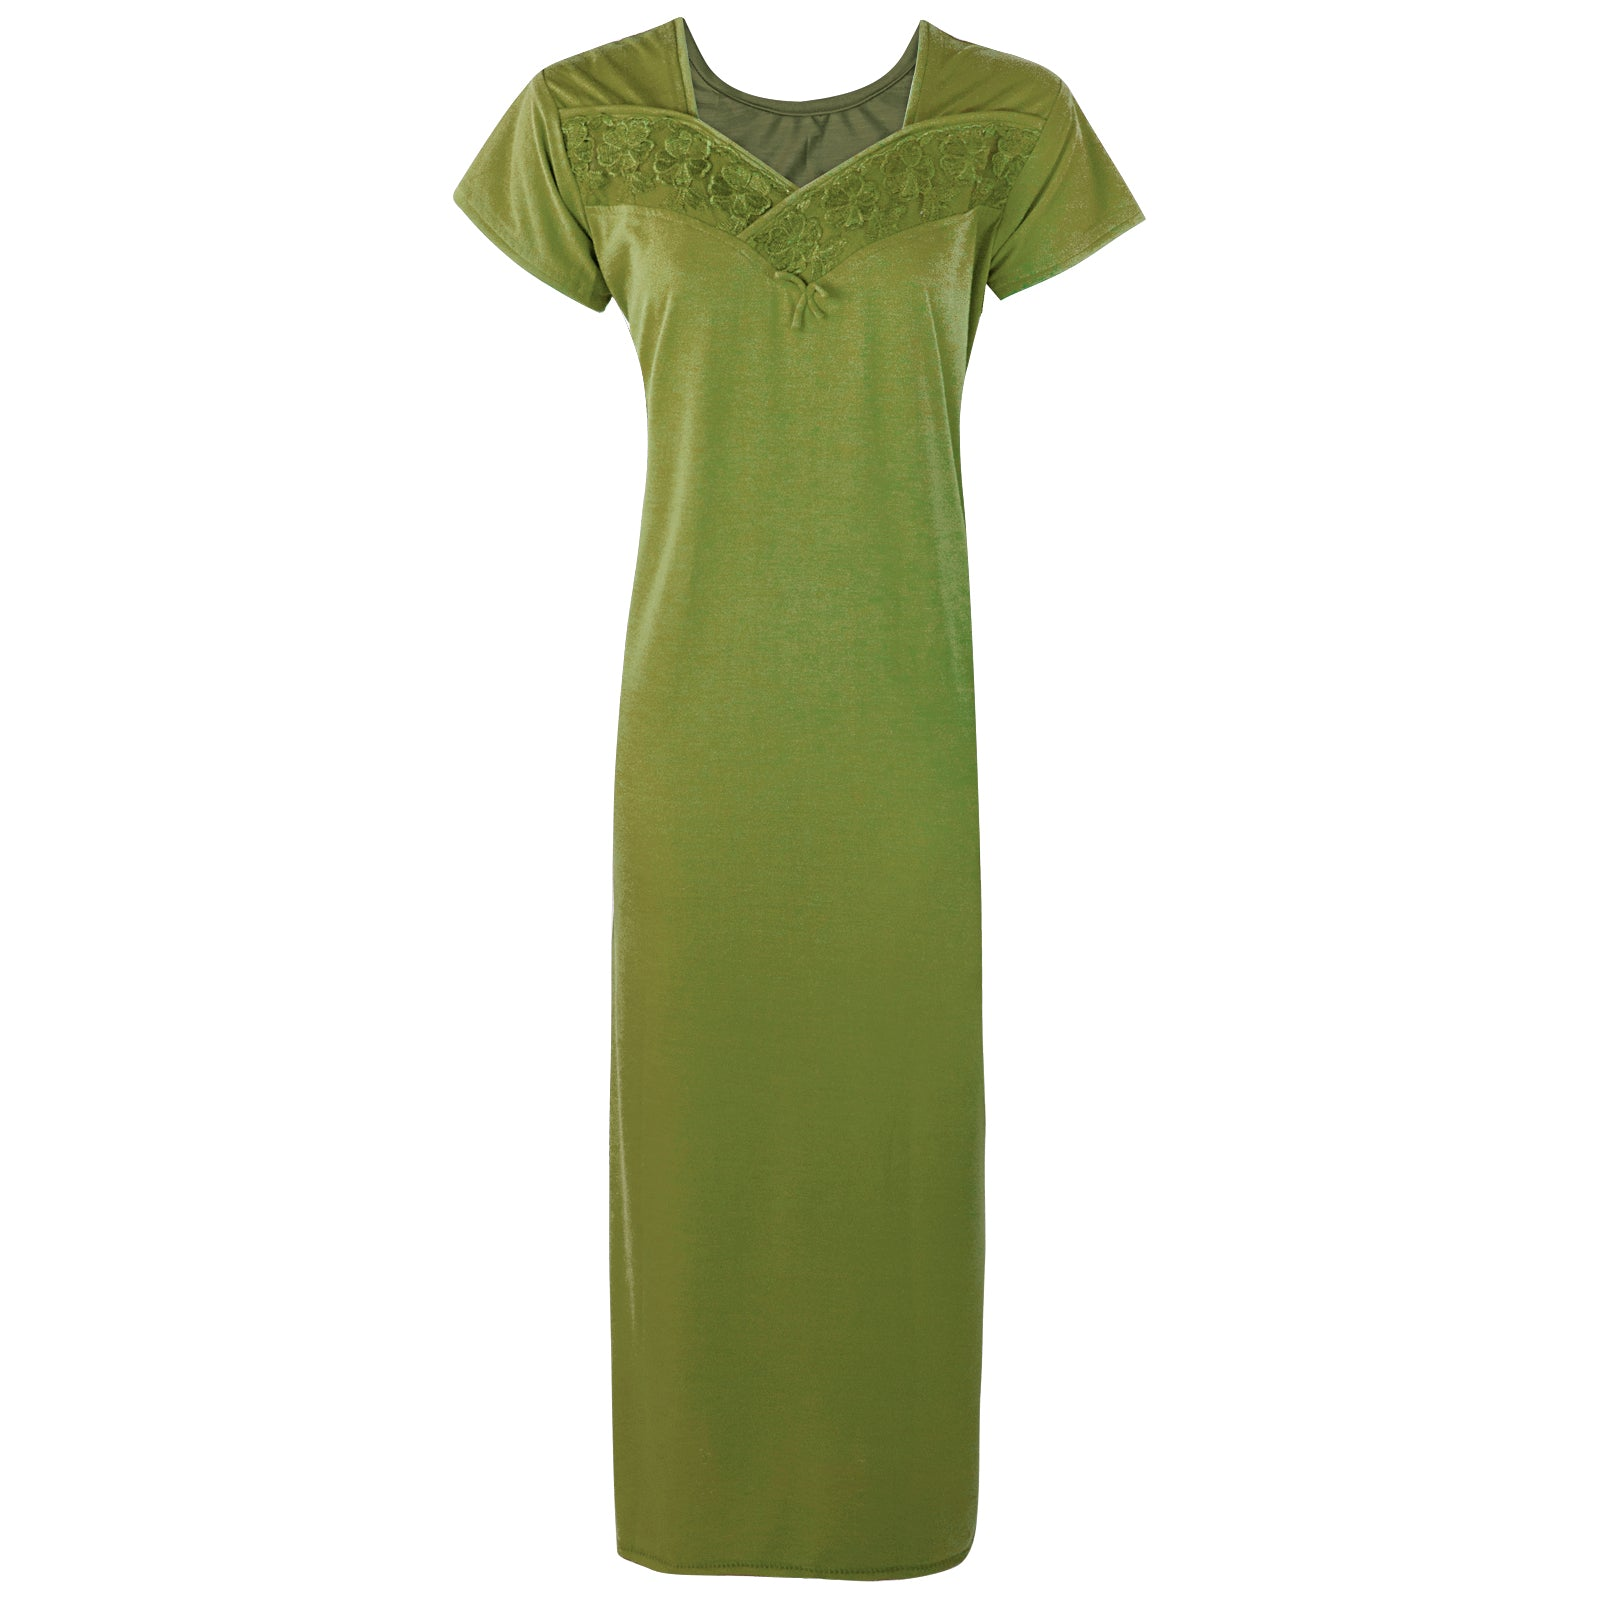 Colour: Green Cotton Blend Comfy Jersey Nightdress Size: 12-16